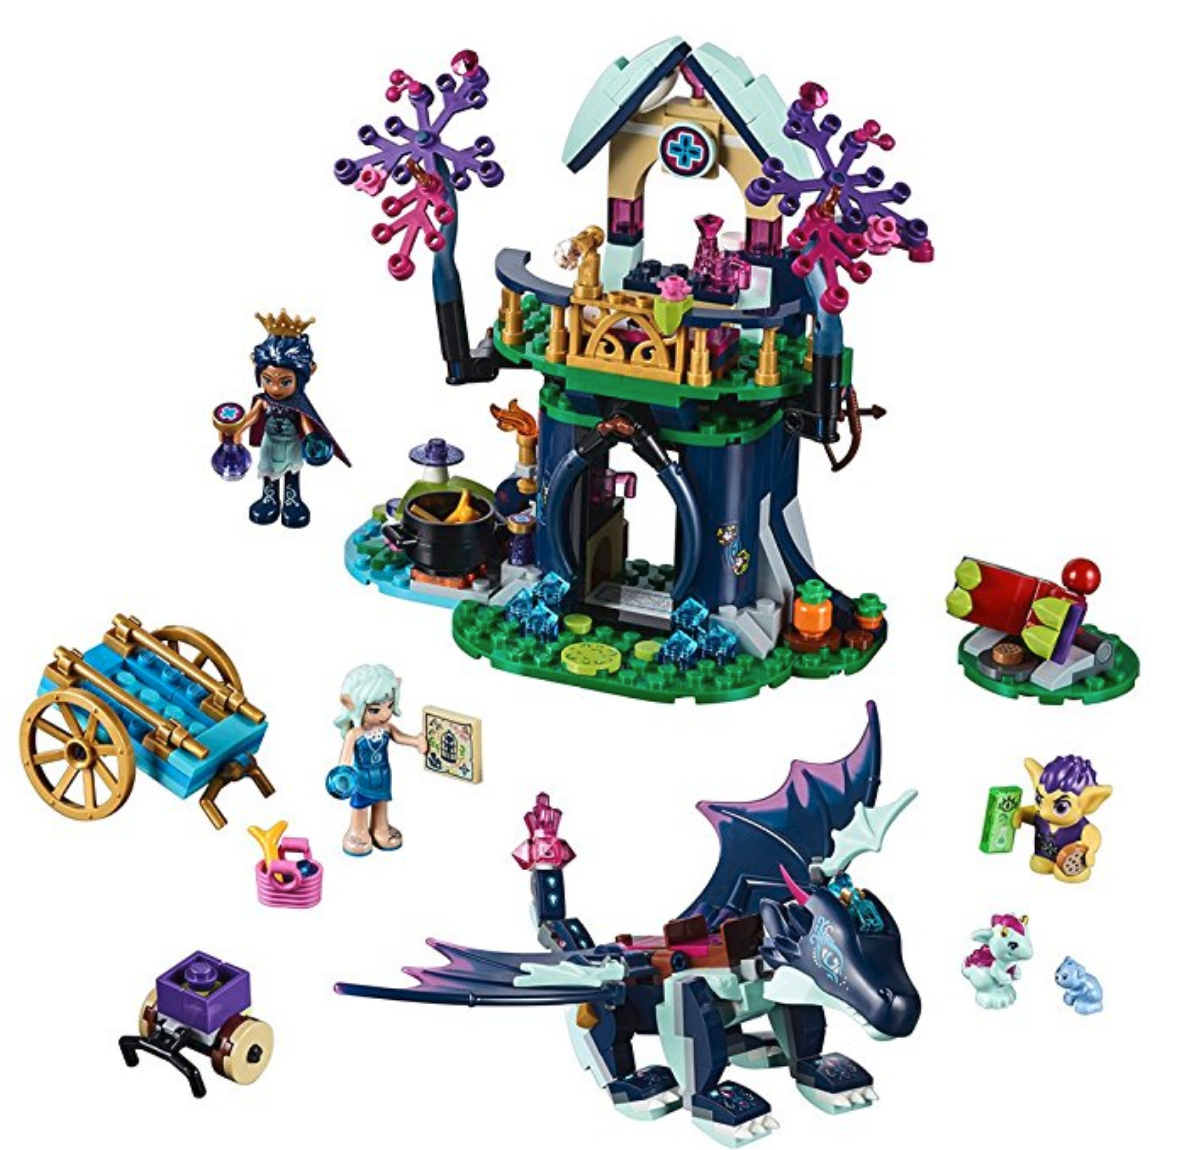 LEGO has so many themes and characters at various ages that you can't go wrong when shopping for a cool gift for an 11-year-old.